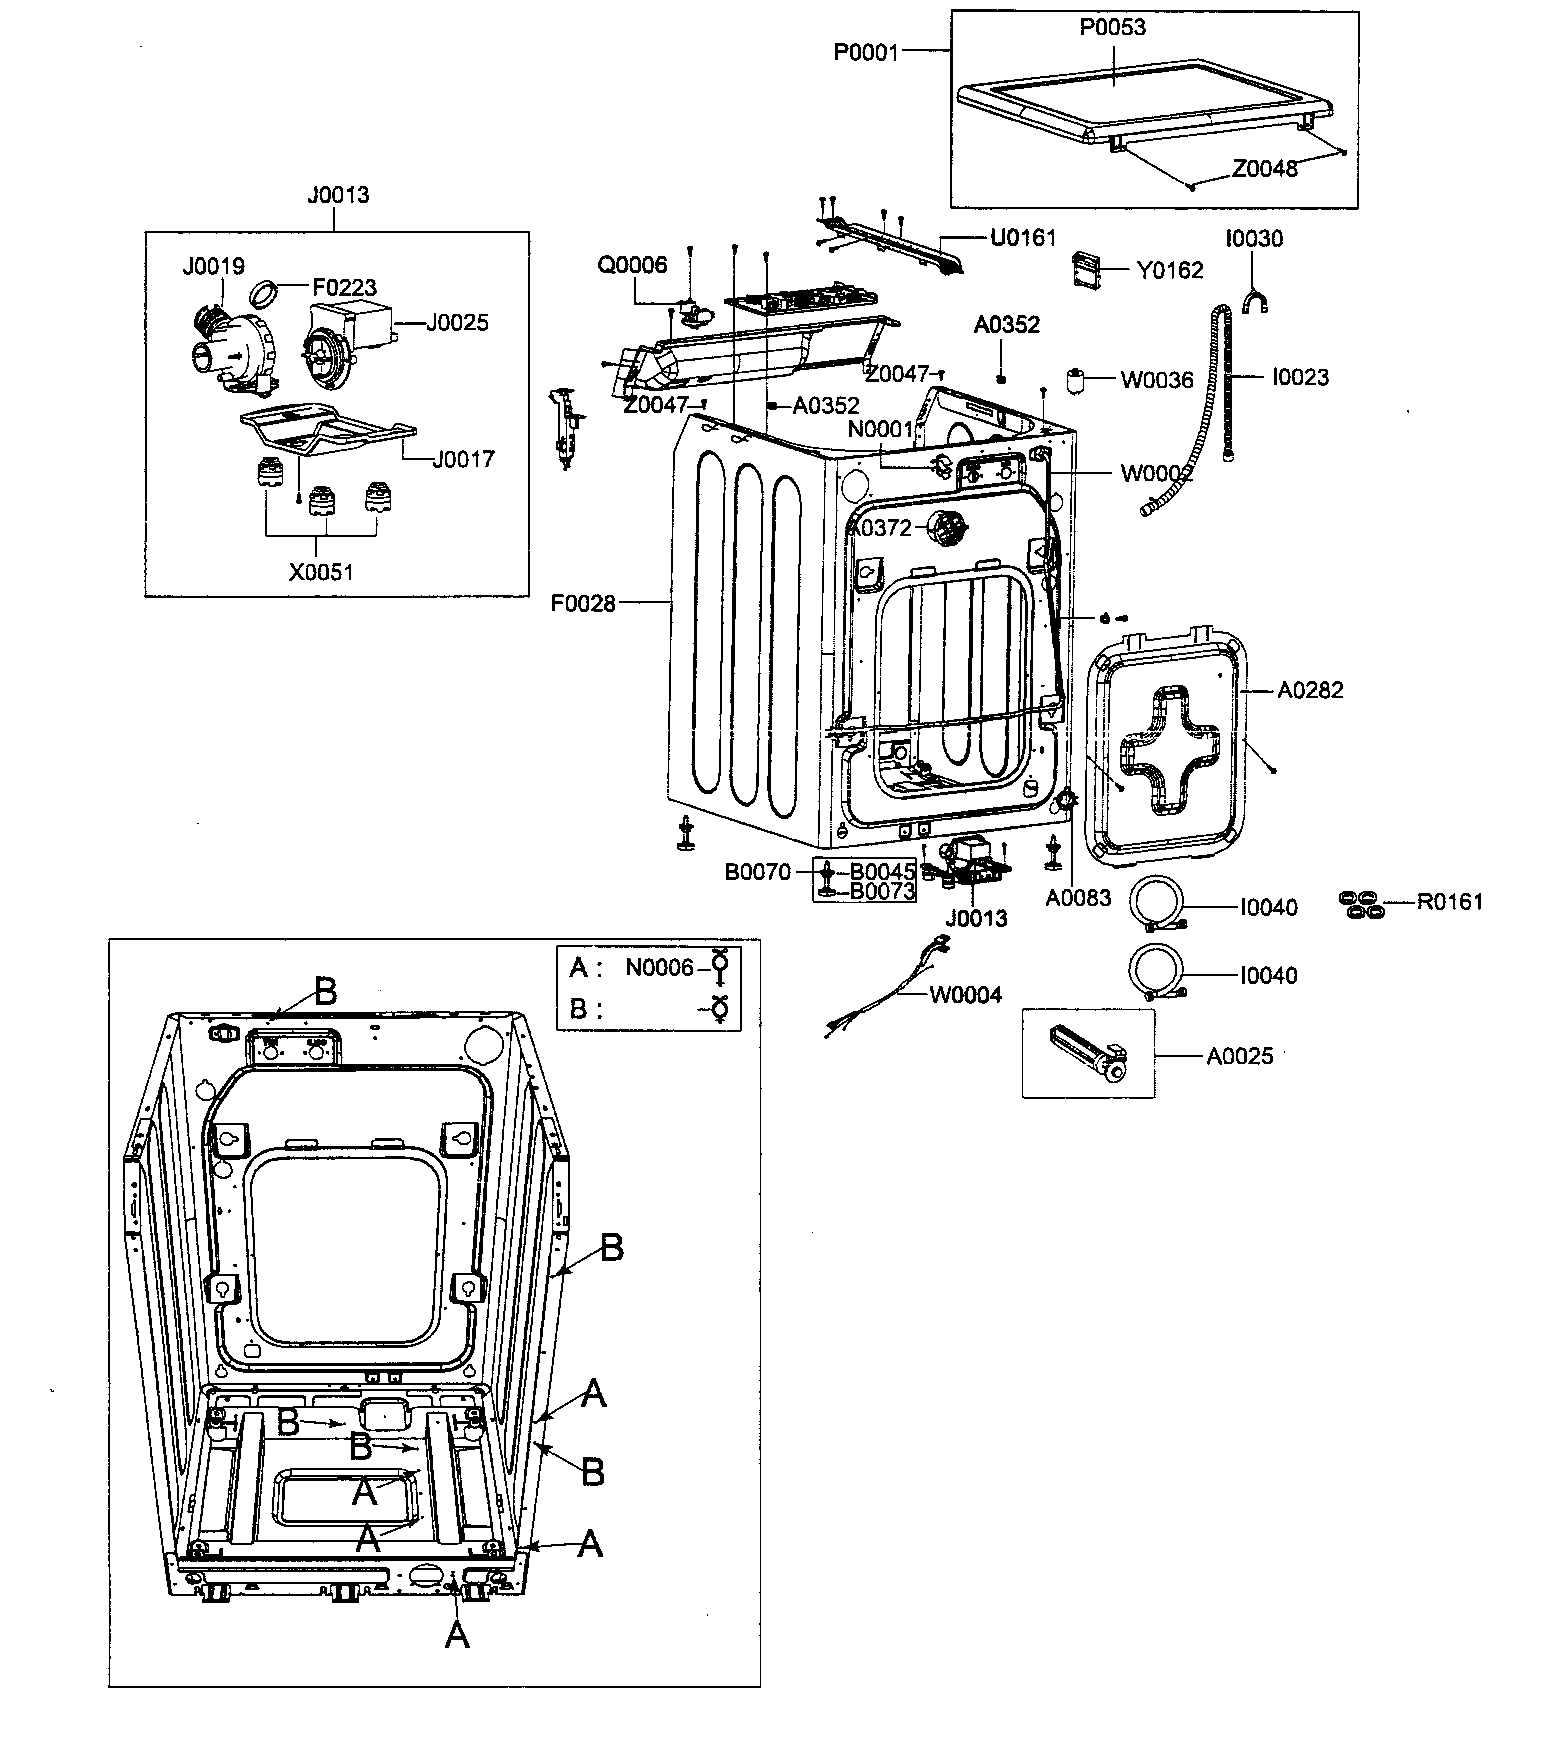 i need an assembly drawing for a samsung washer model